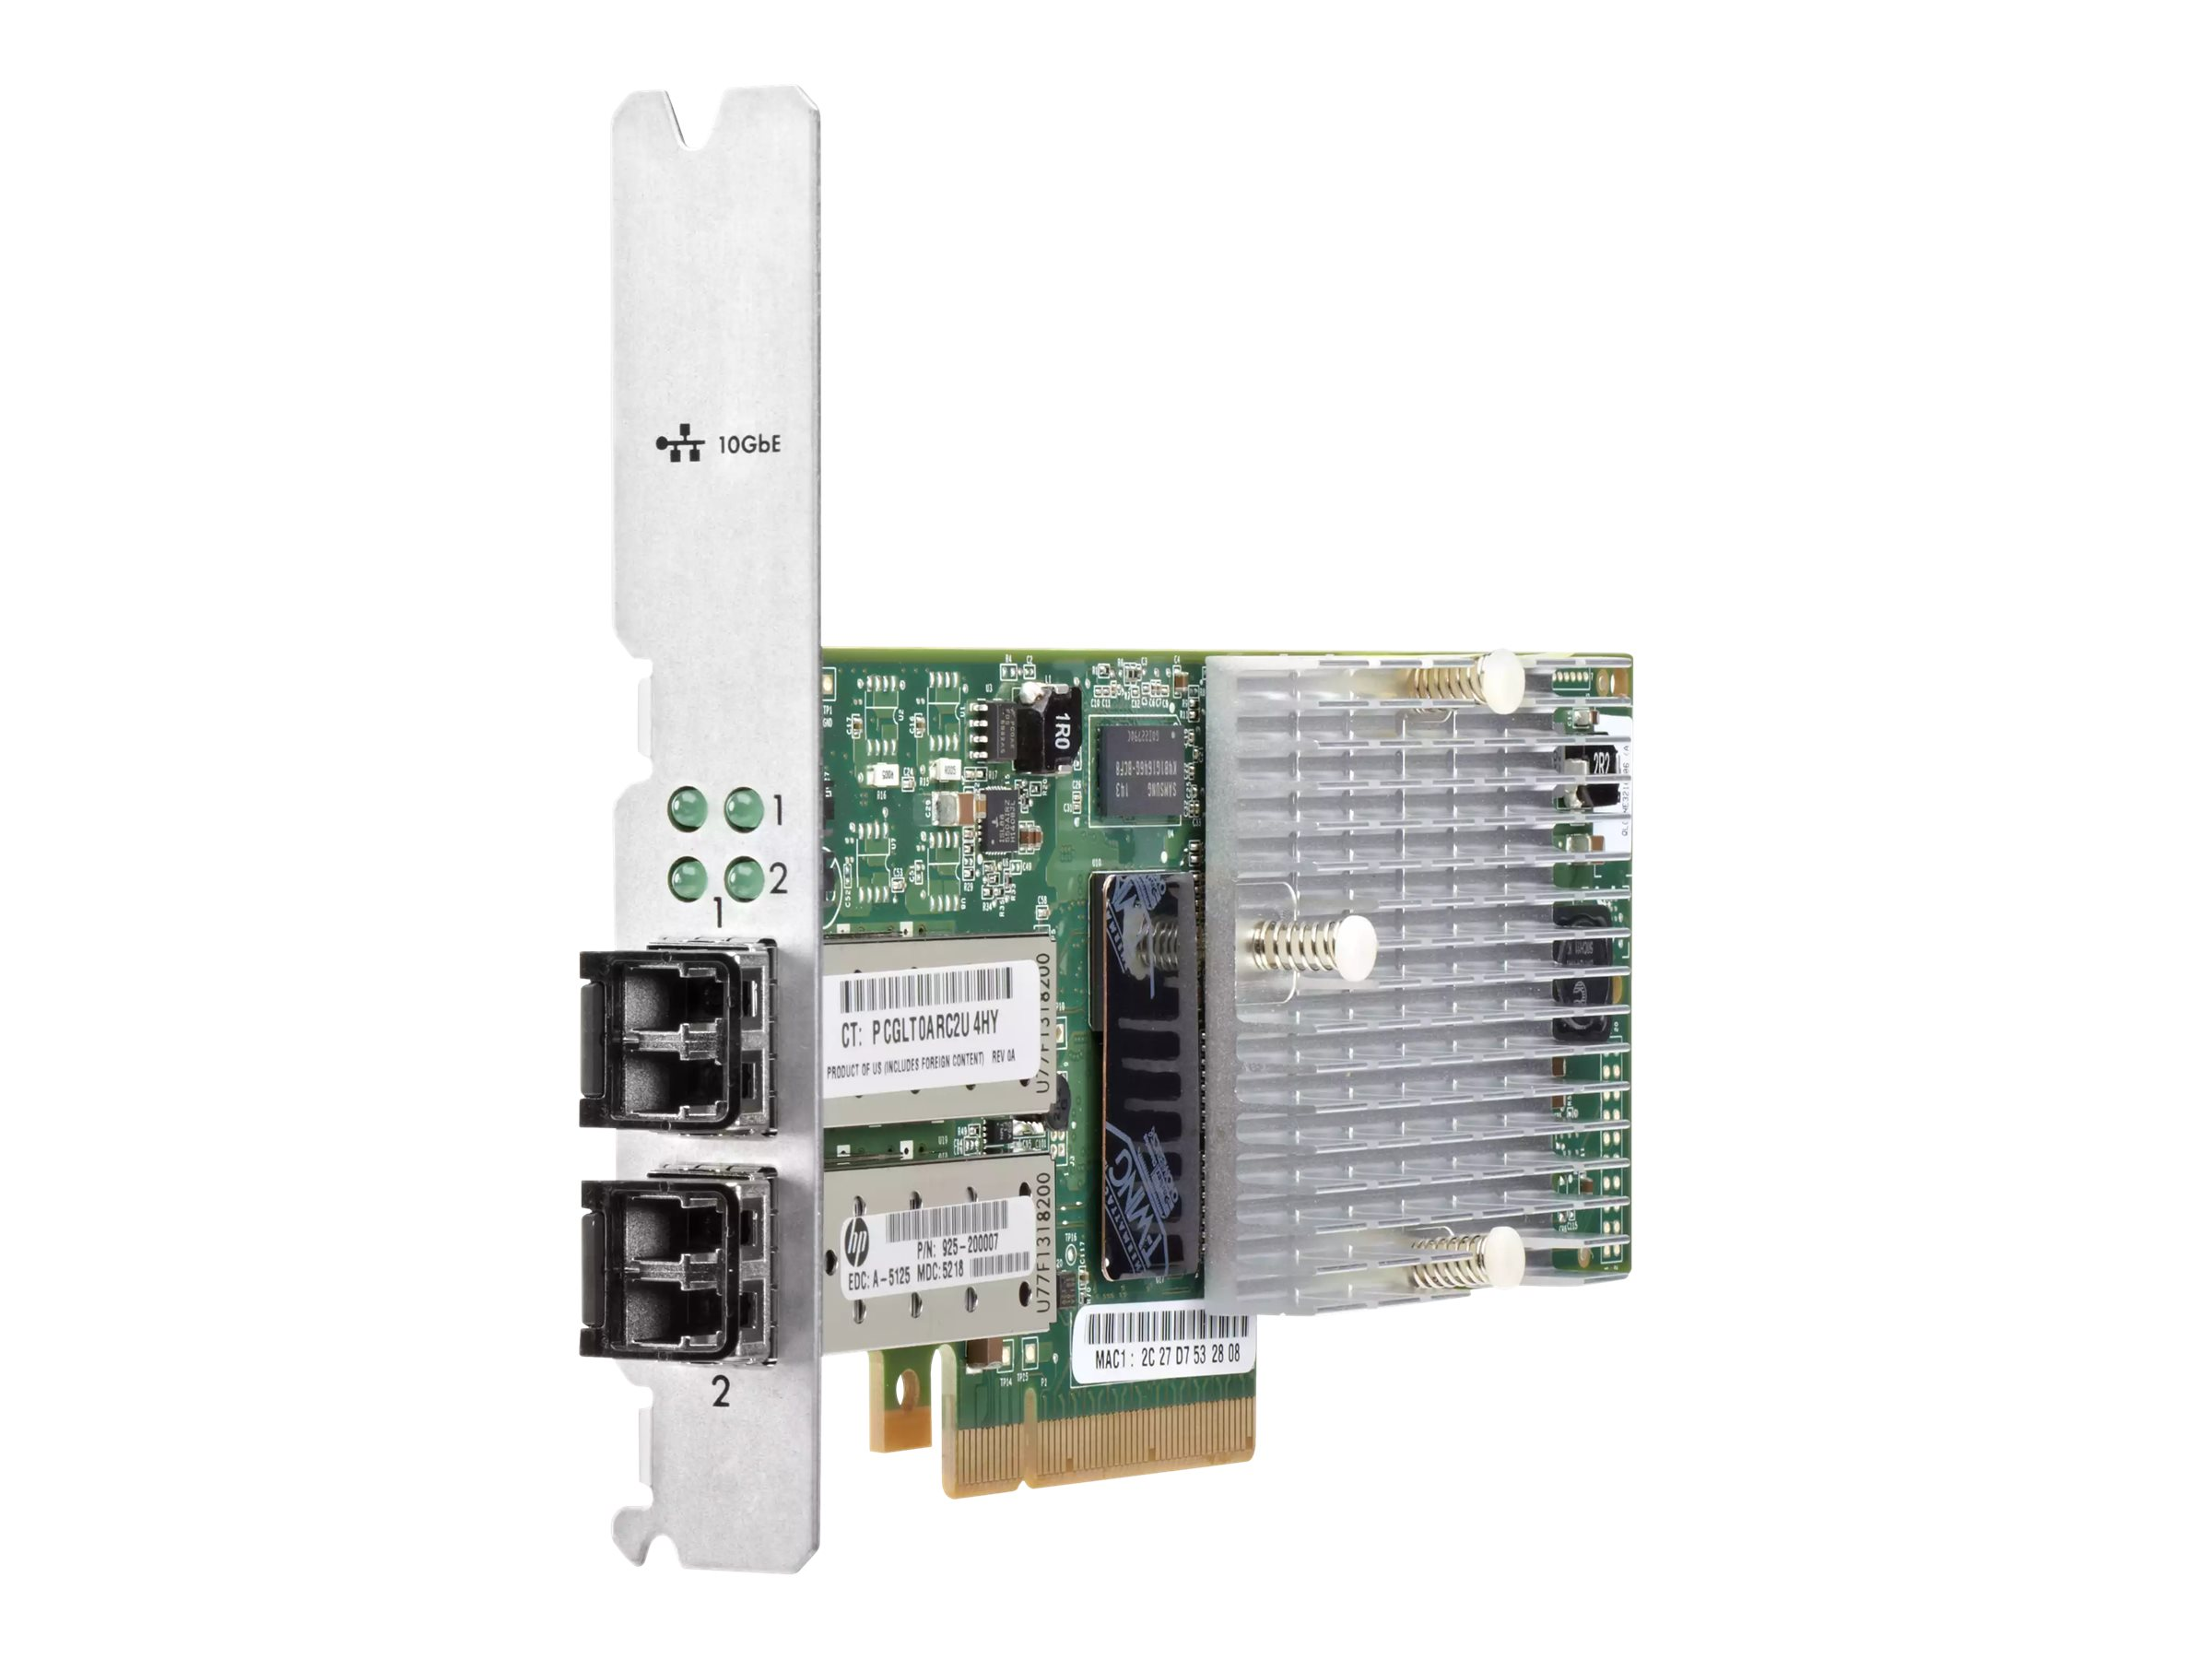 HPE - network adapter - Gigabit Ethernet (iSCSI) x 2